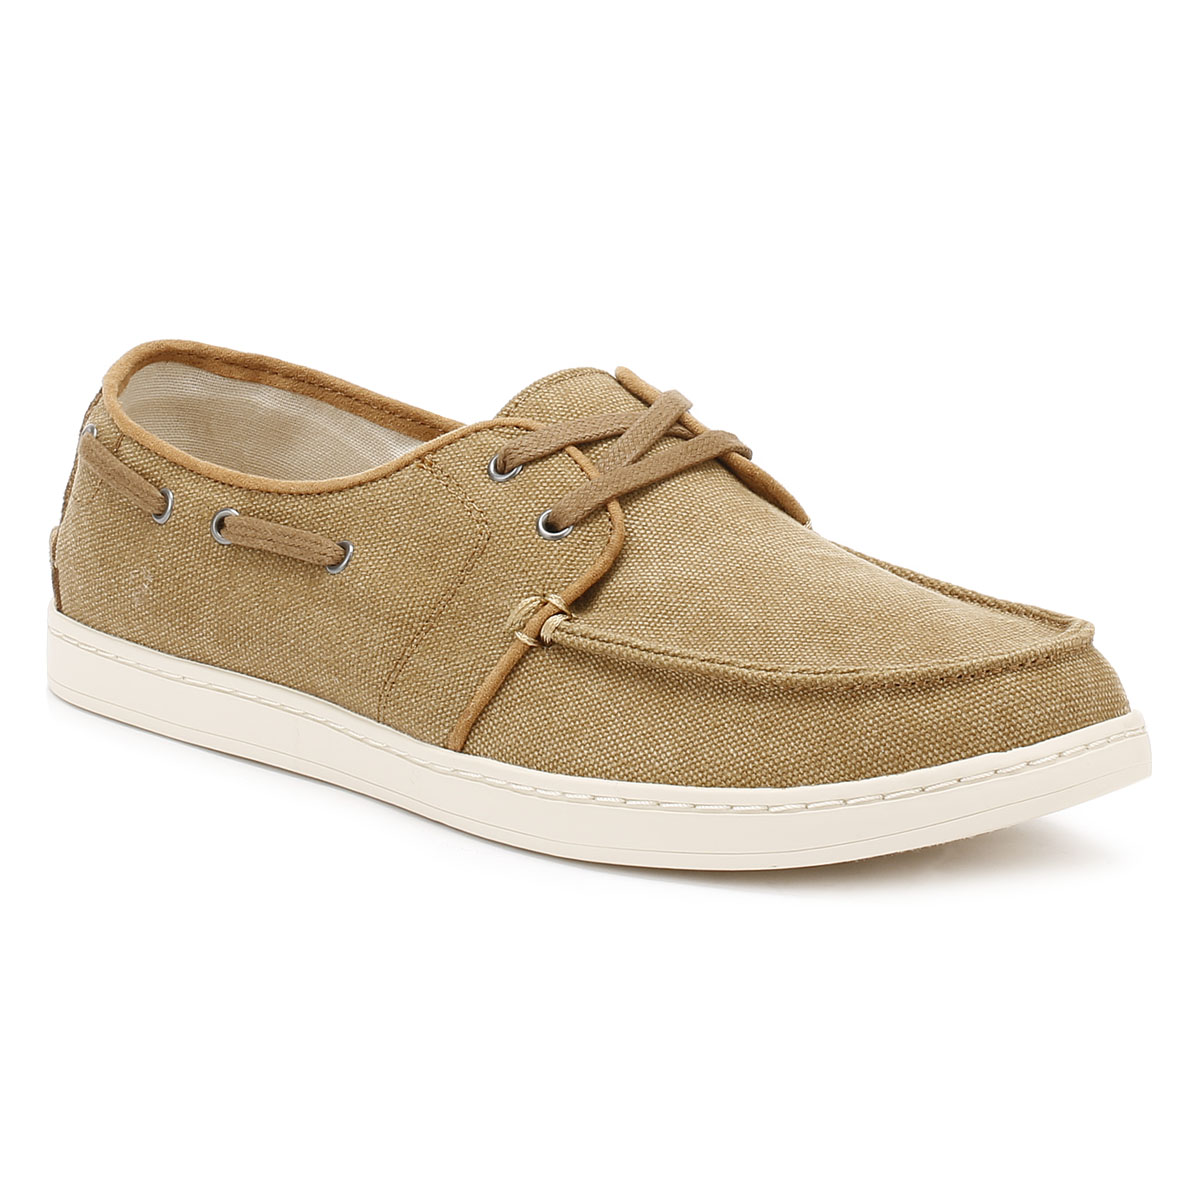 Mens Canvas Boat Shoes Uk